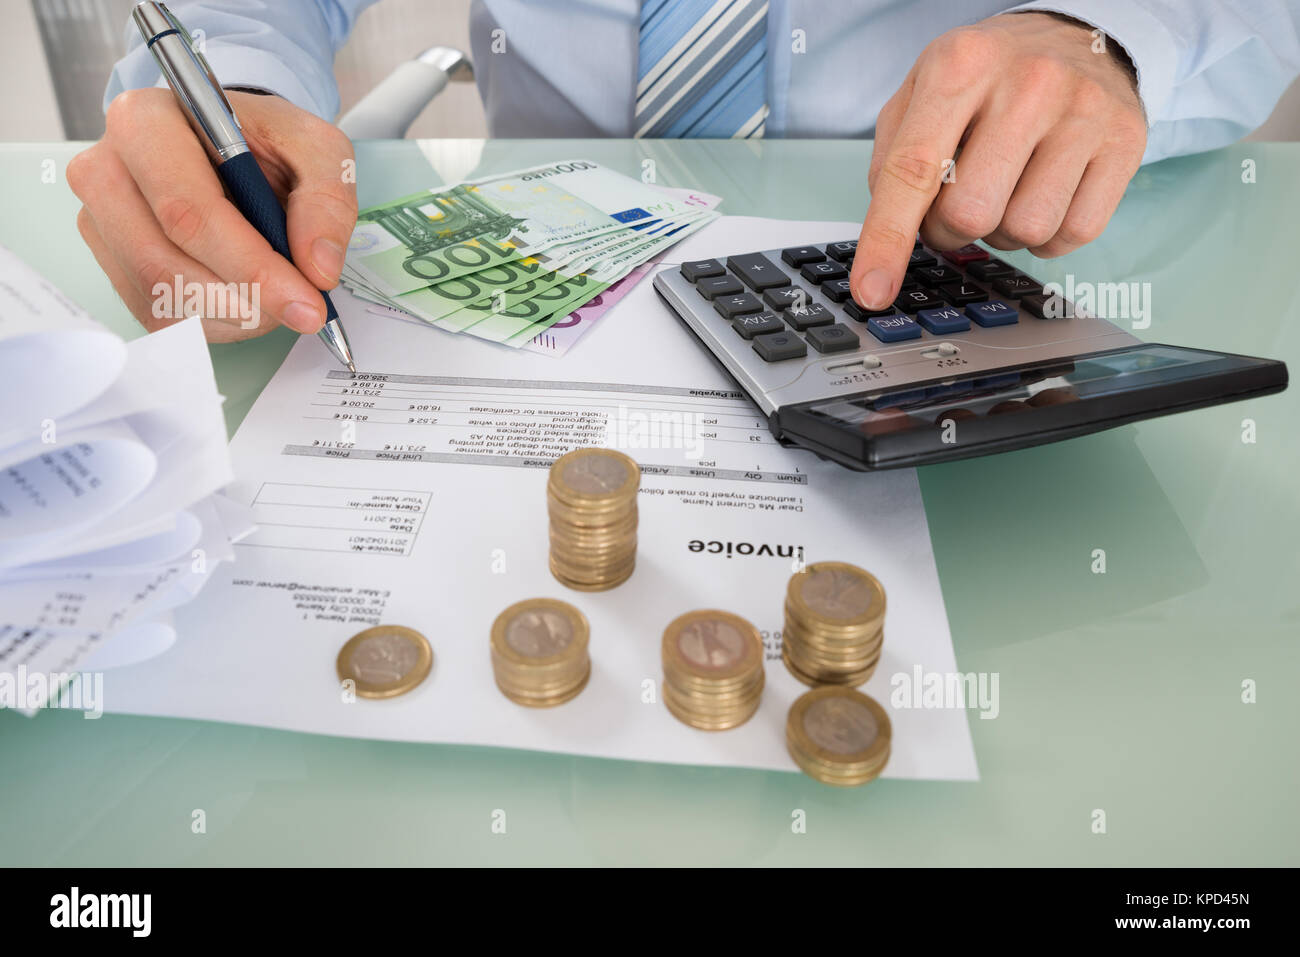 Businessman Calculating Invoice With Money At Desk Stock Photo